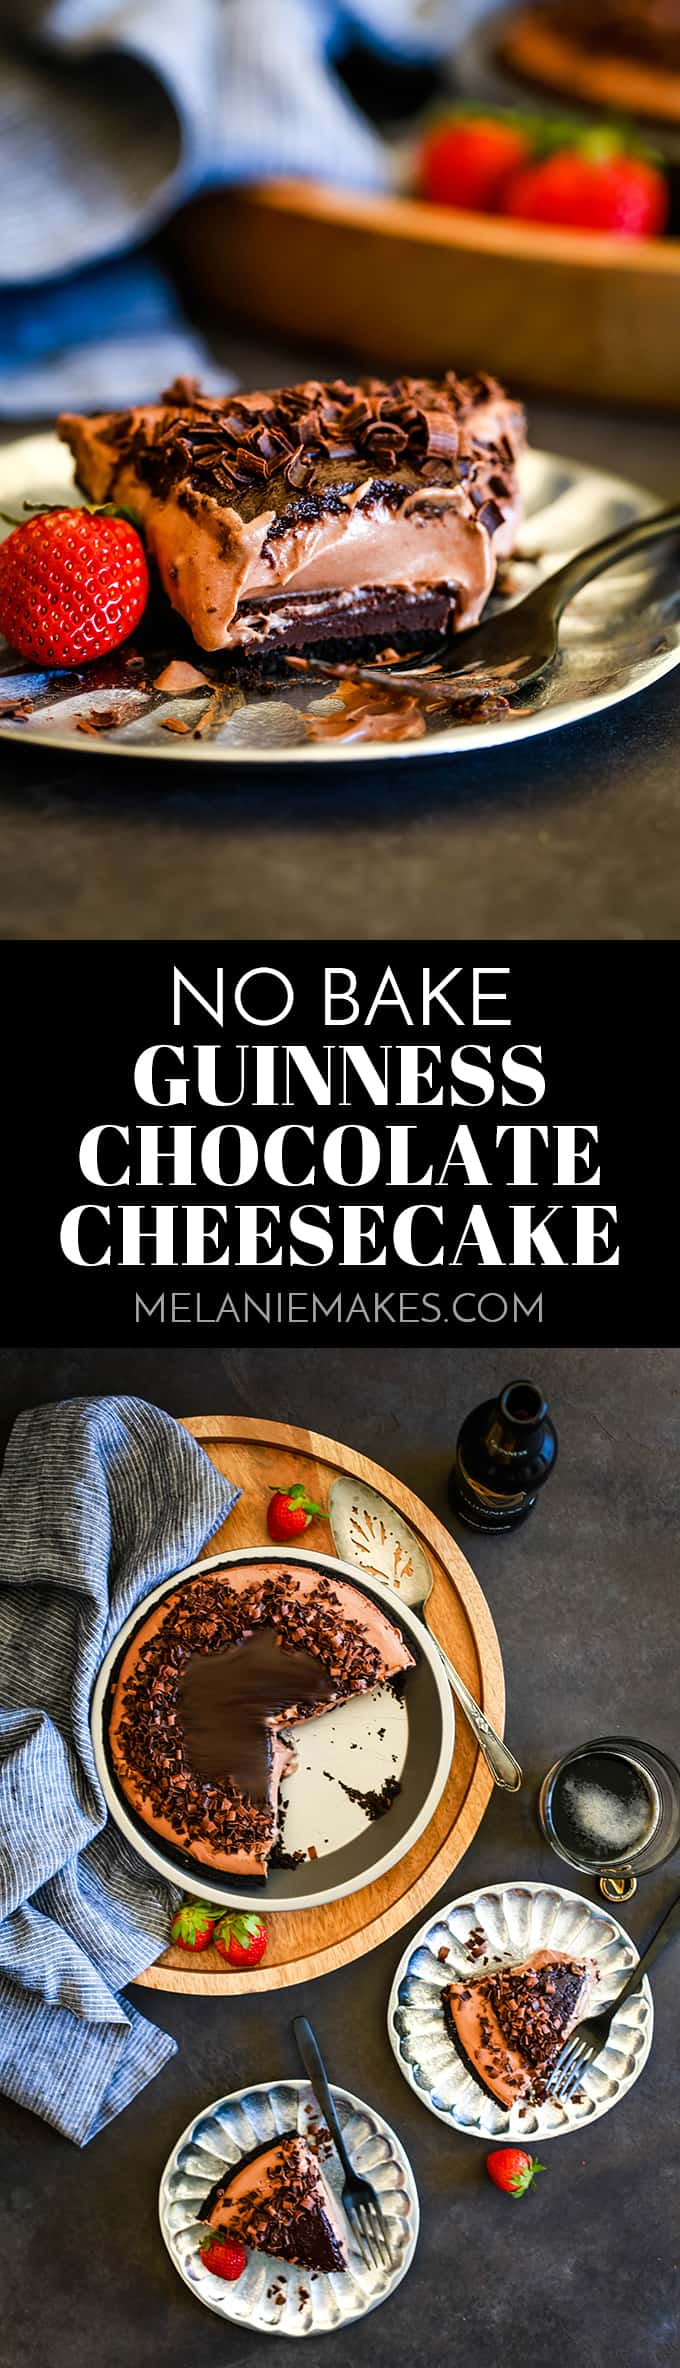 Chocolate and beer lovers will no doubt love this No Bake Guinness Chocolate Cheesecake and the fact that it takes just 15 minutes to prepare. #nobake #cheesecake #chocolate #desserts #easyrecipe #guinness #beer